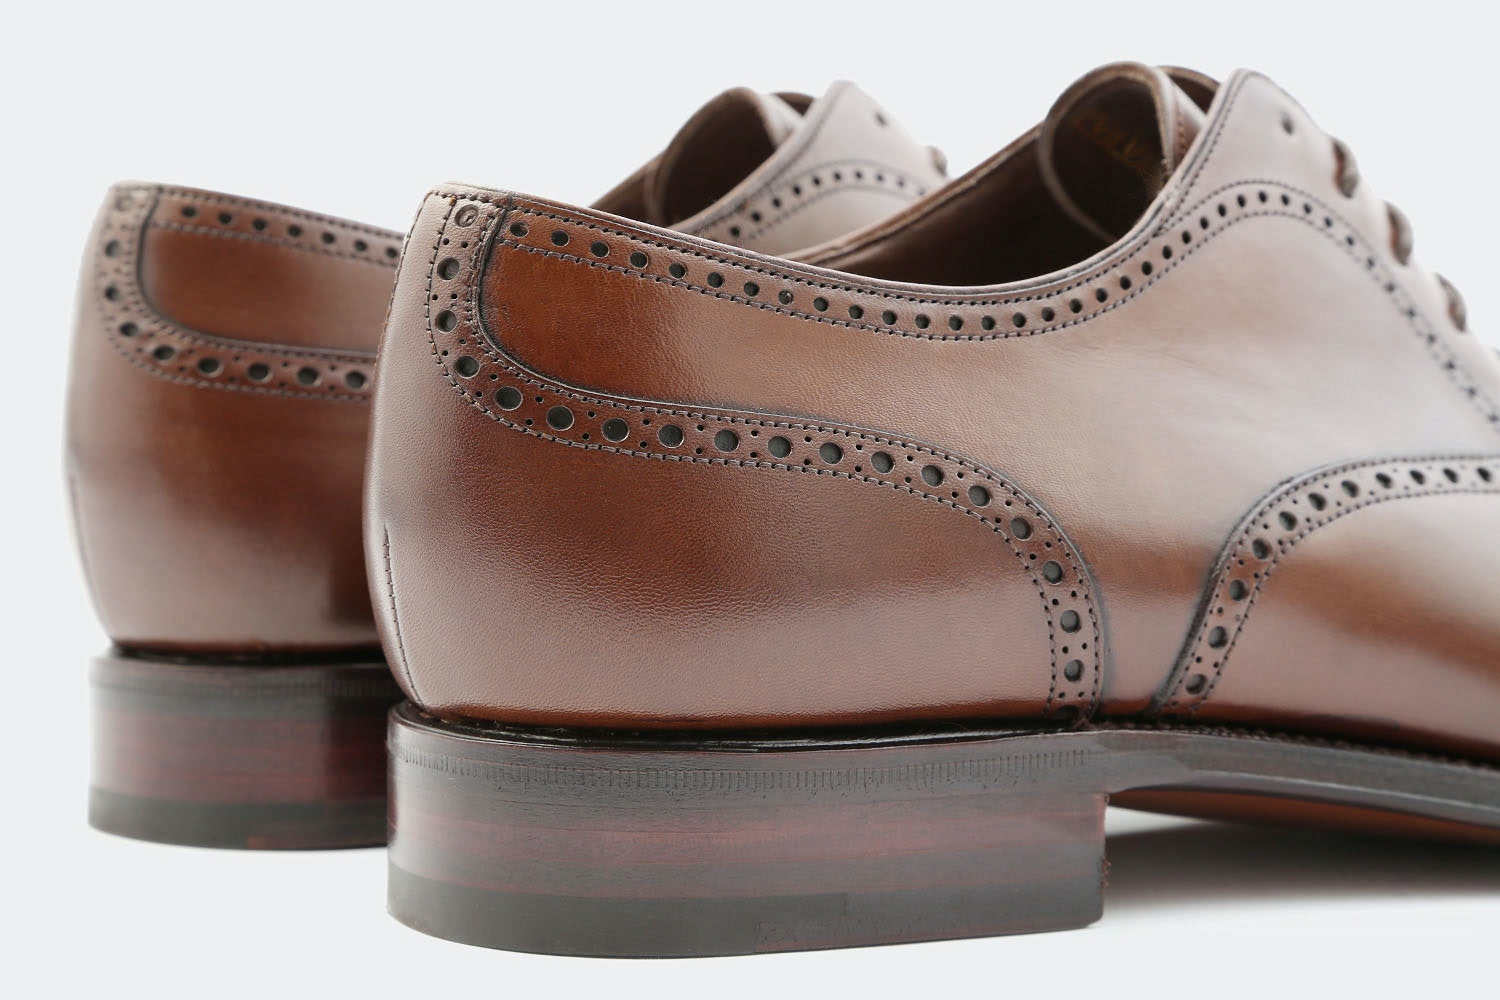 Massdrop x Carmina Semi-Brogue Oxford